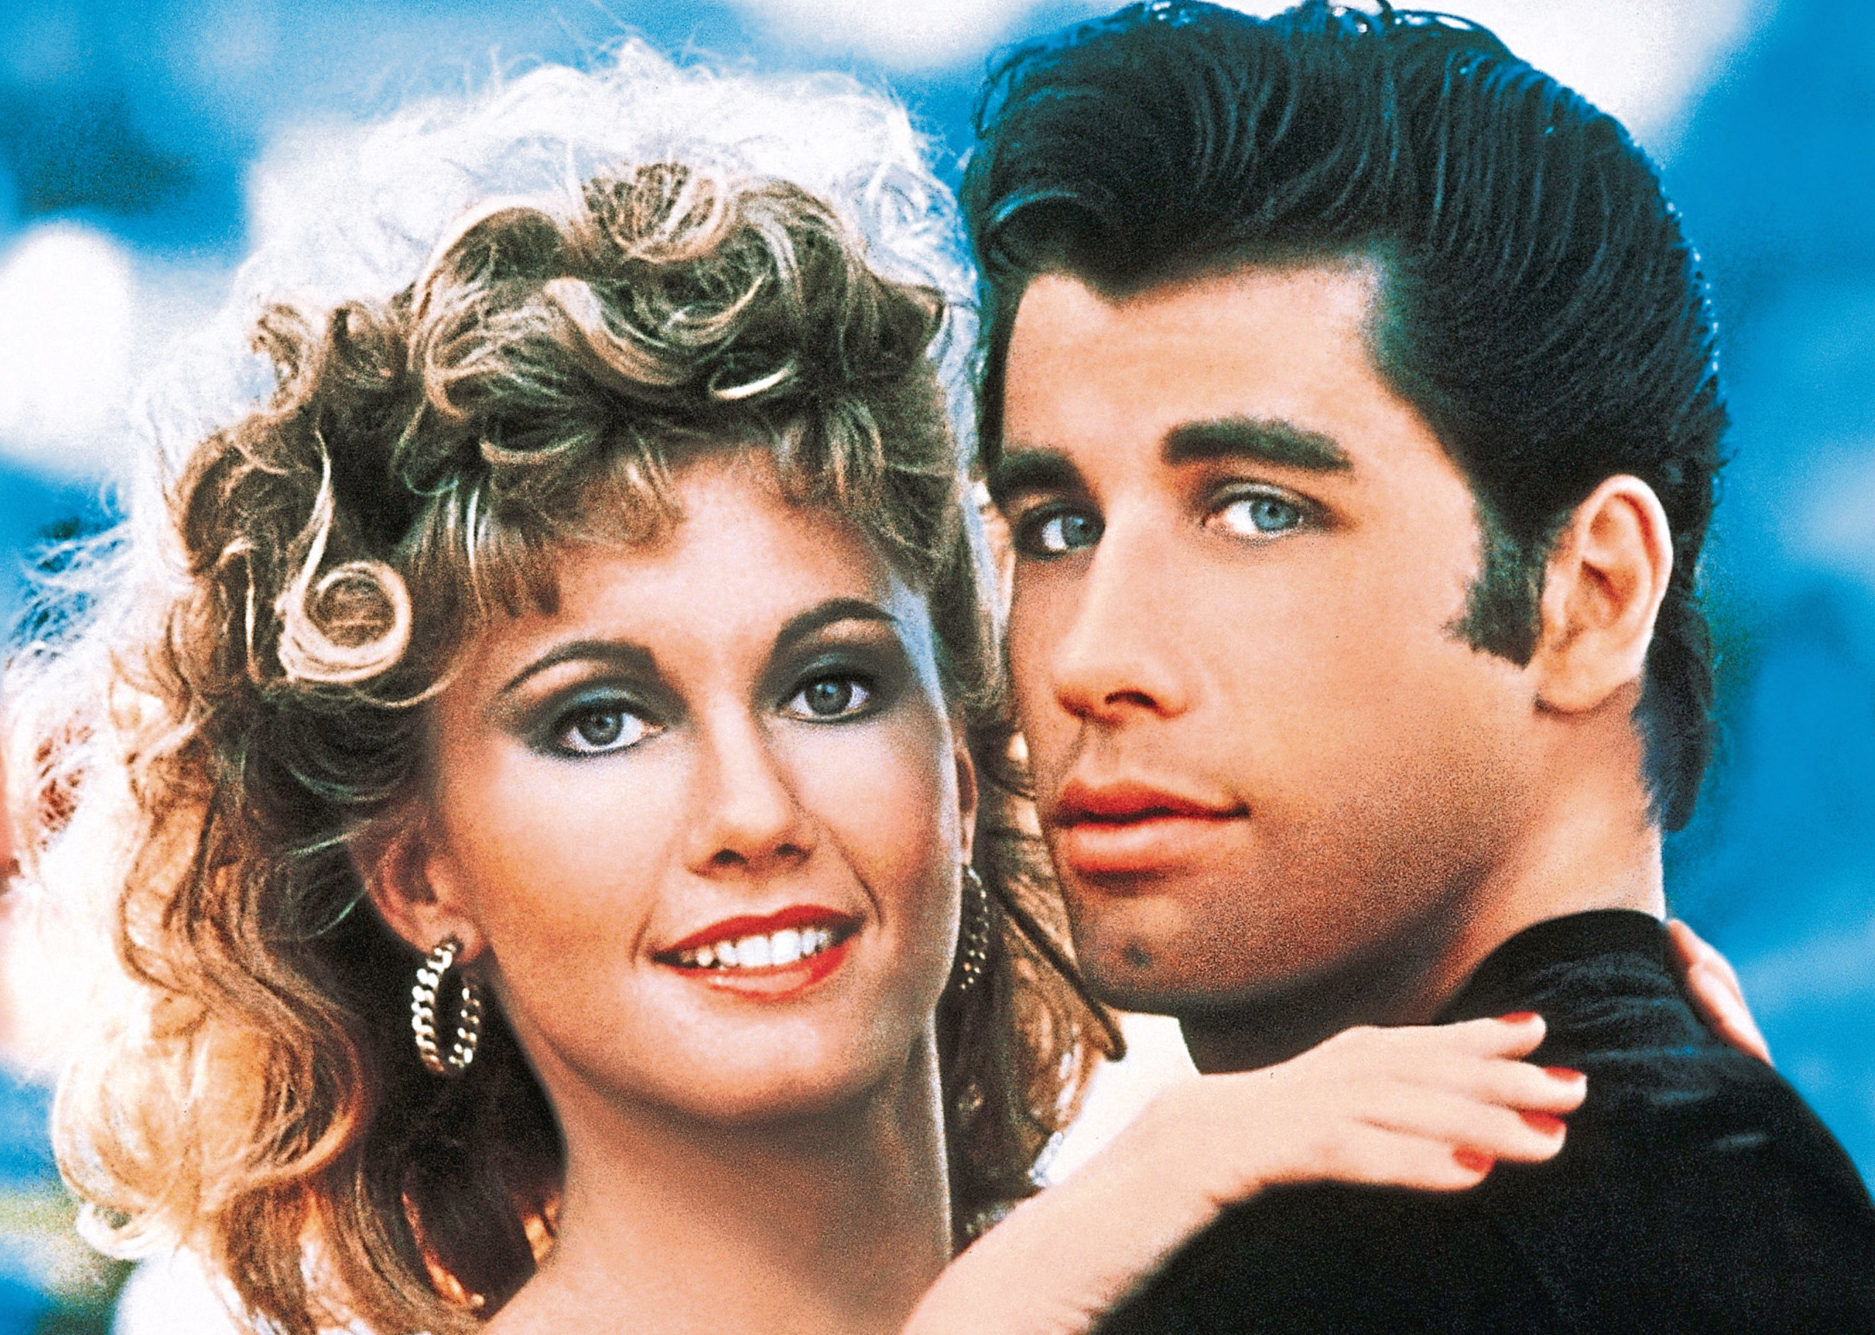 Olivia Newton-John and John Travolta in their starring roles